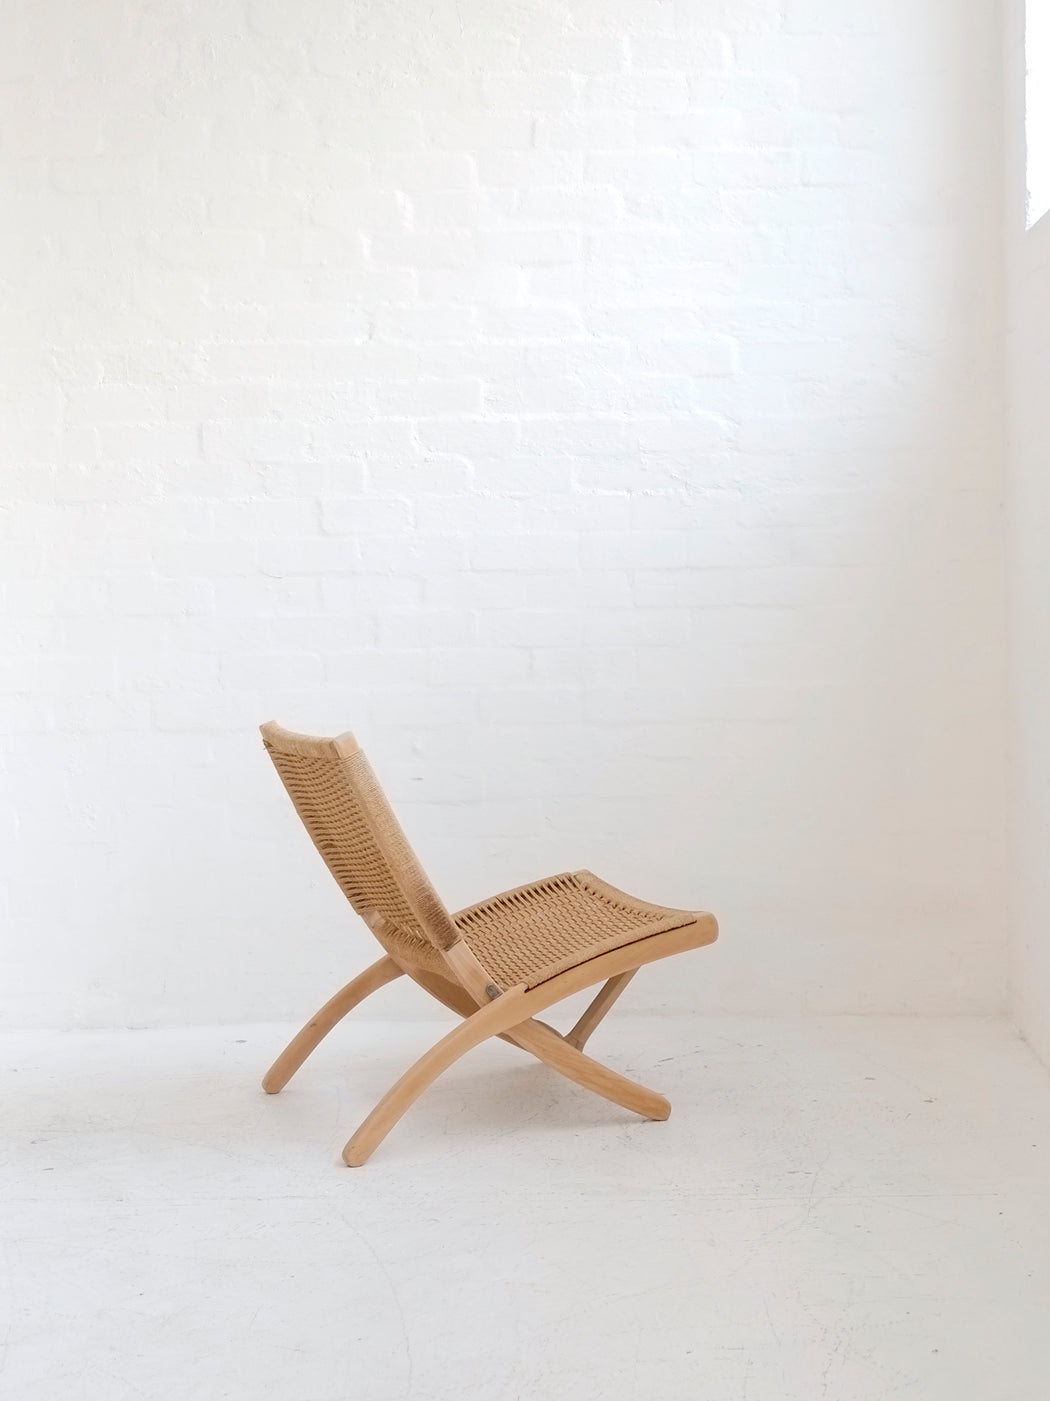 Yugoslavian Folding Chair